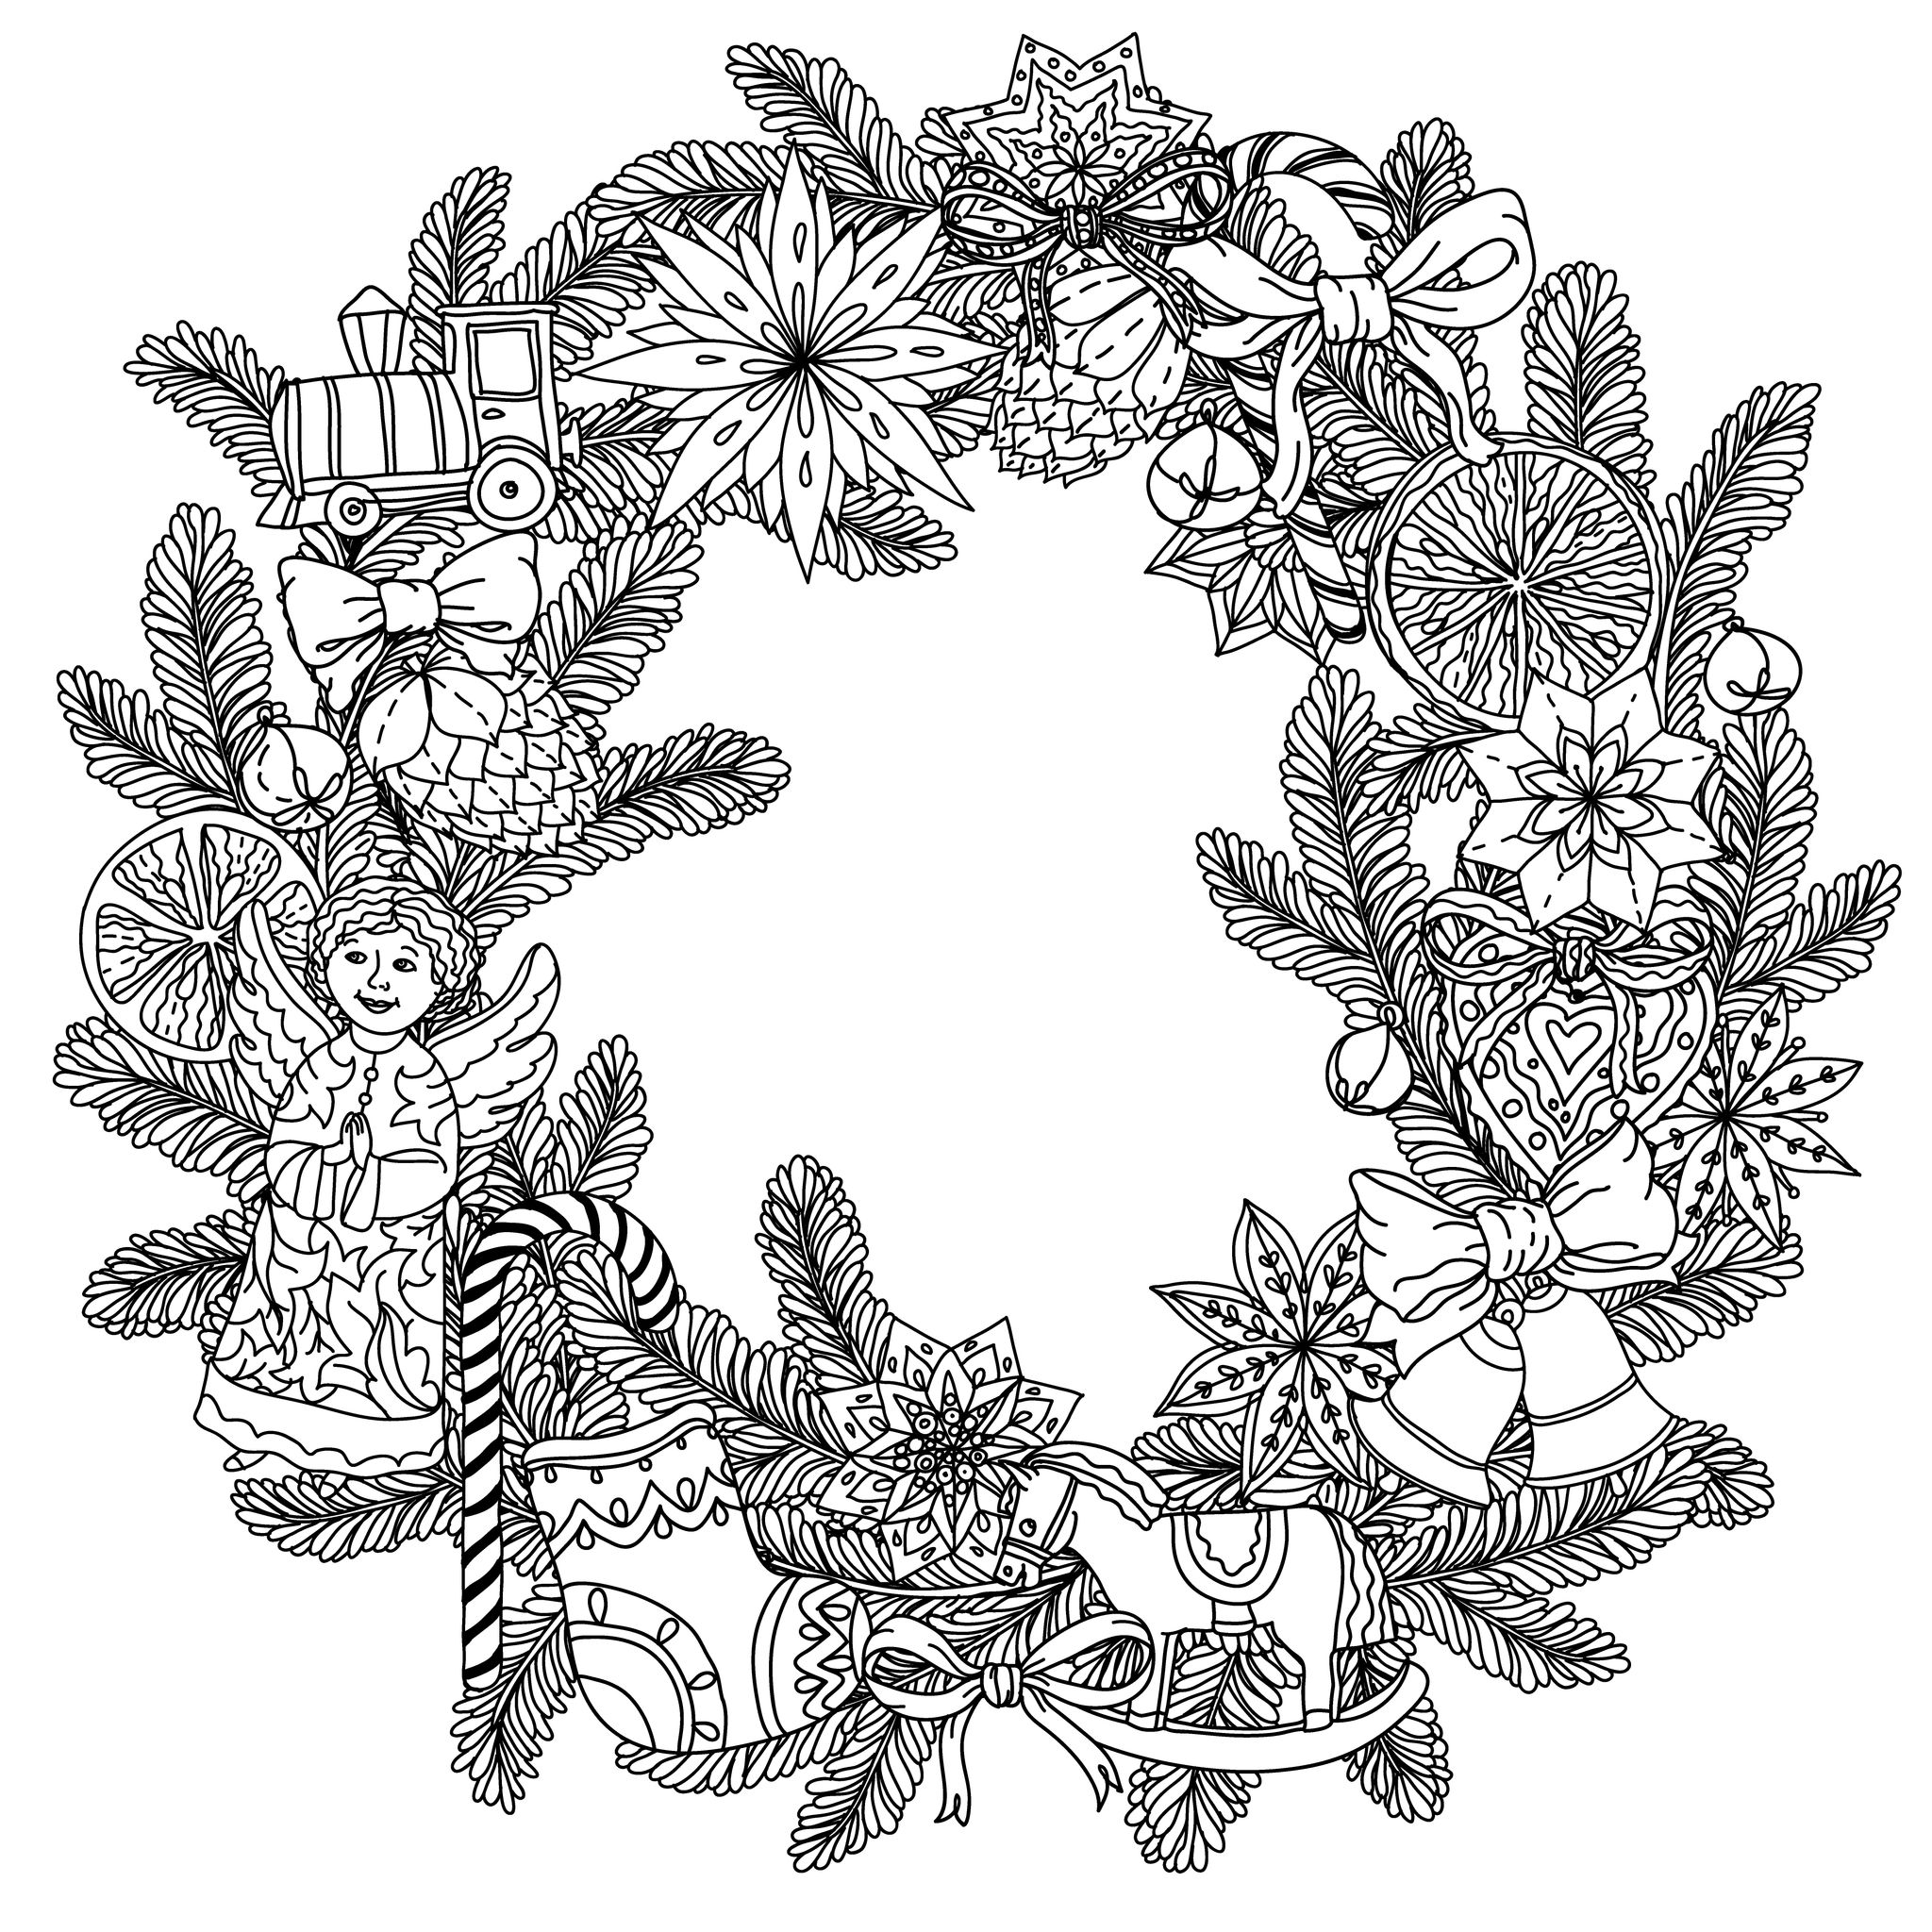 graphic regarding Christmas Wreath Printable titled Xmas wreath - Xmas Grownup Coloring Web pages